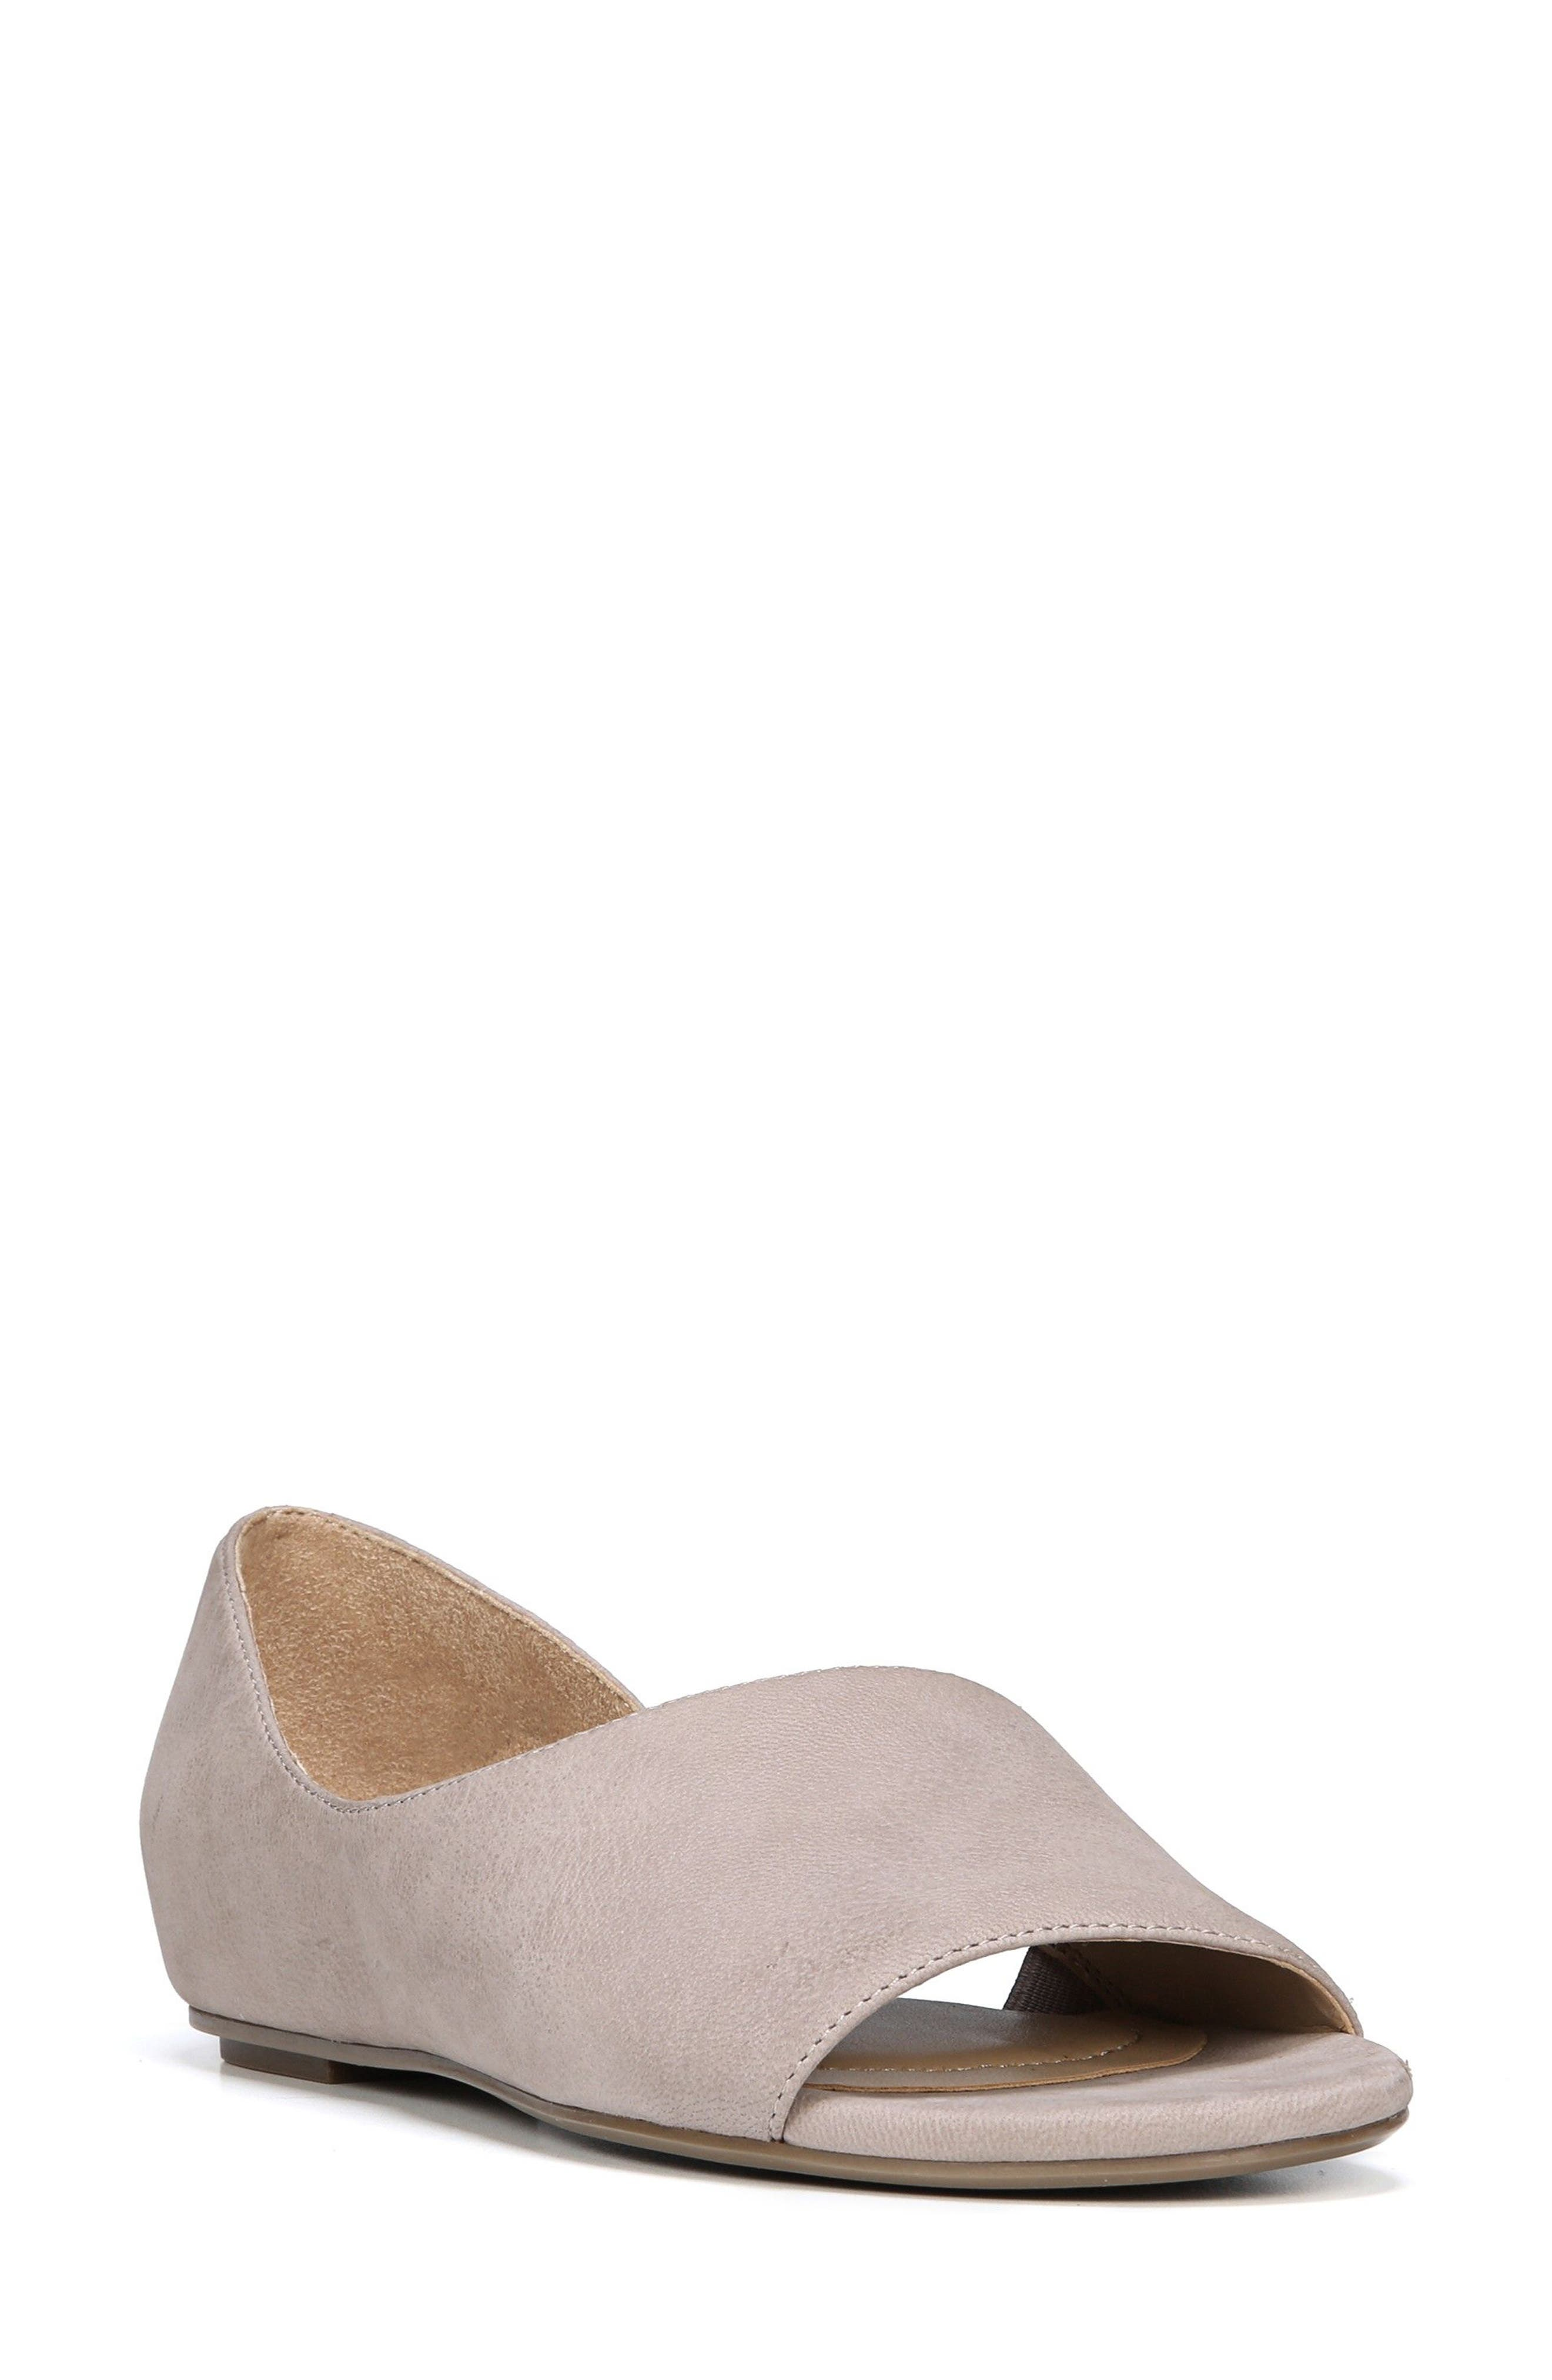 NATURALIZER Lucie Half d'Orsay Flat